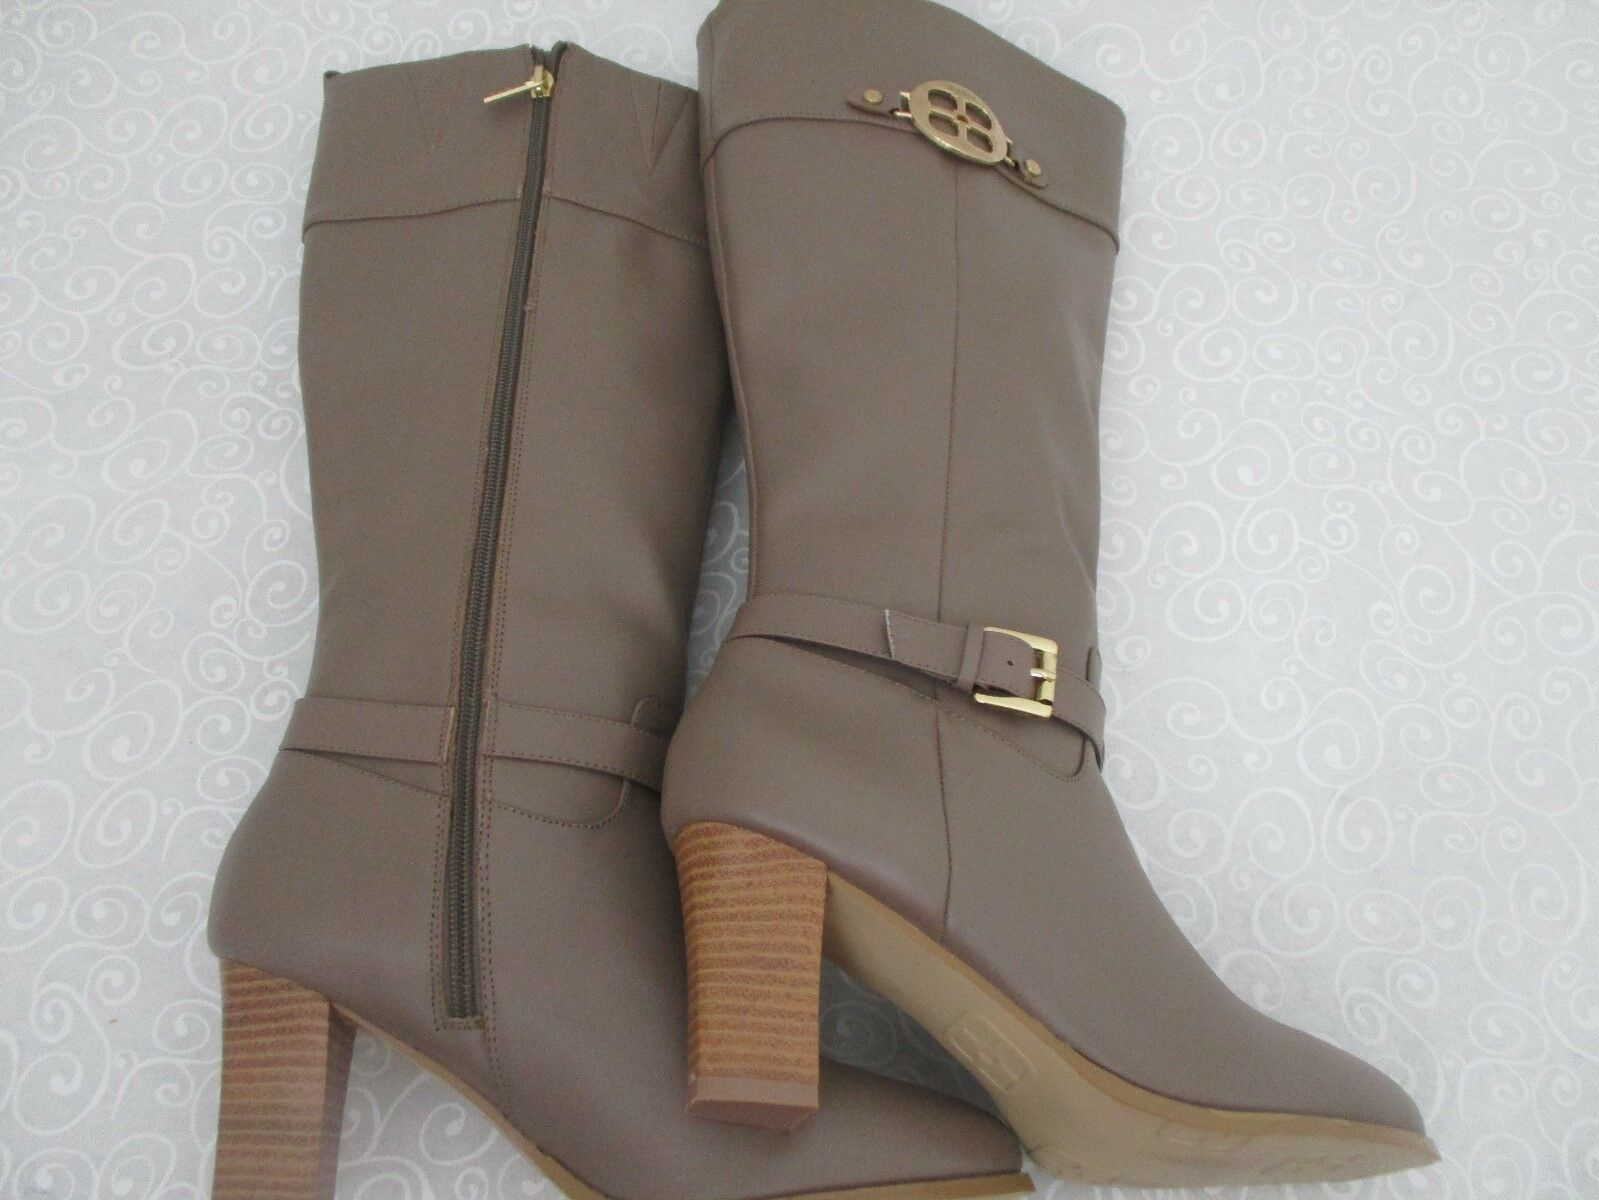 169  IMAN HIGH TAUPE LEATHER KNEE HIGH IMAN Stiefel SIZE 8 1/2 W - NEW 7b10ab